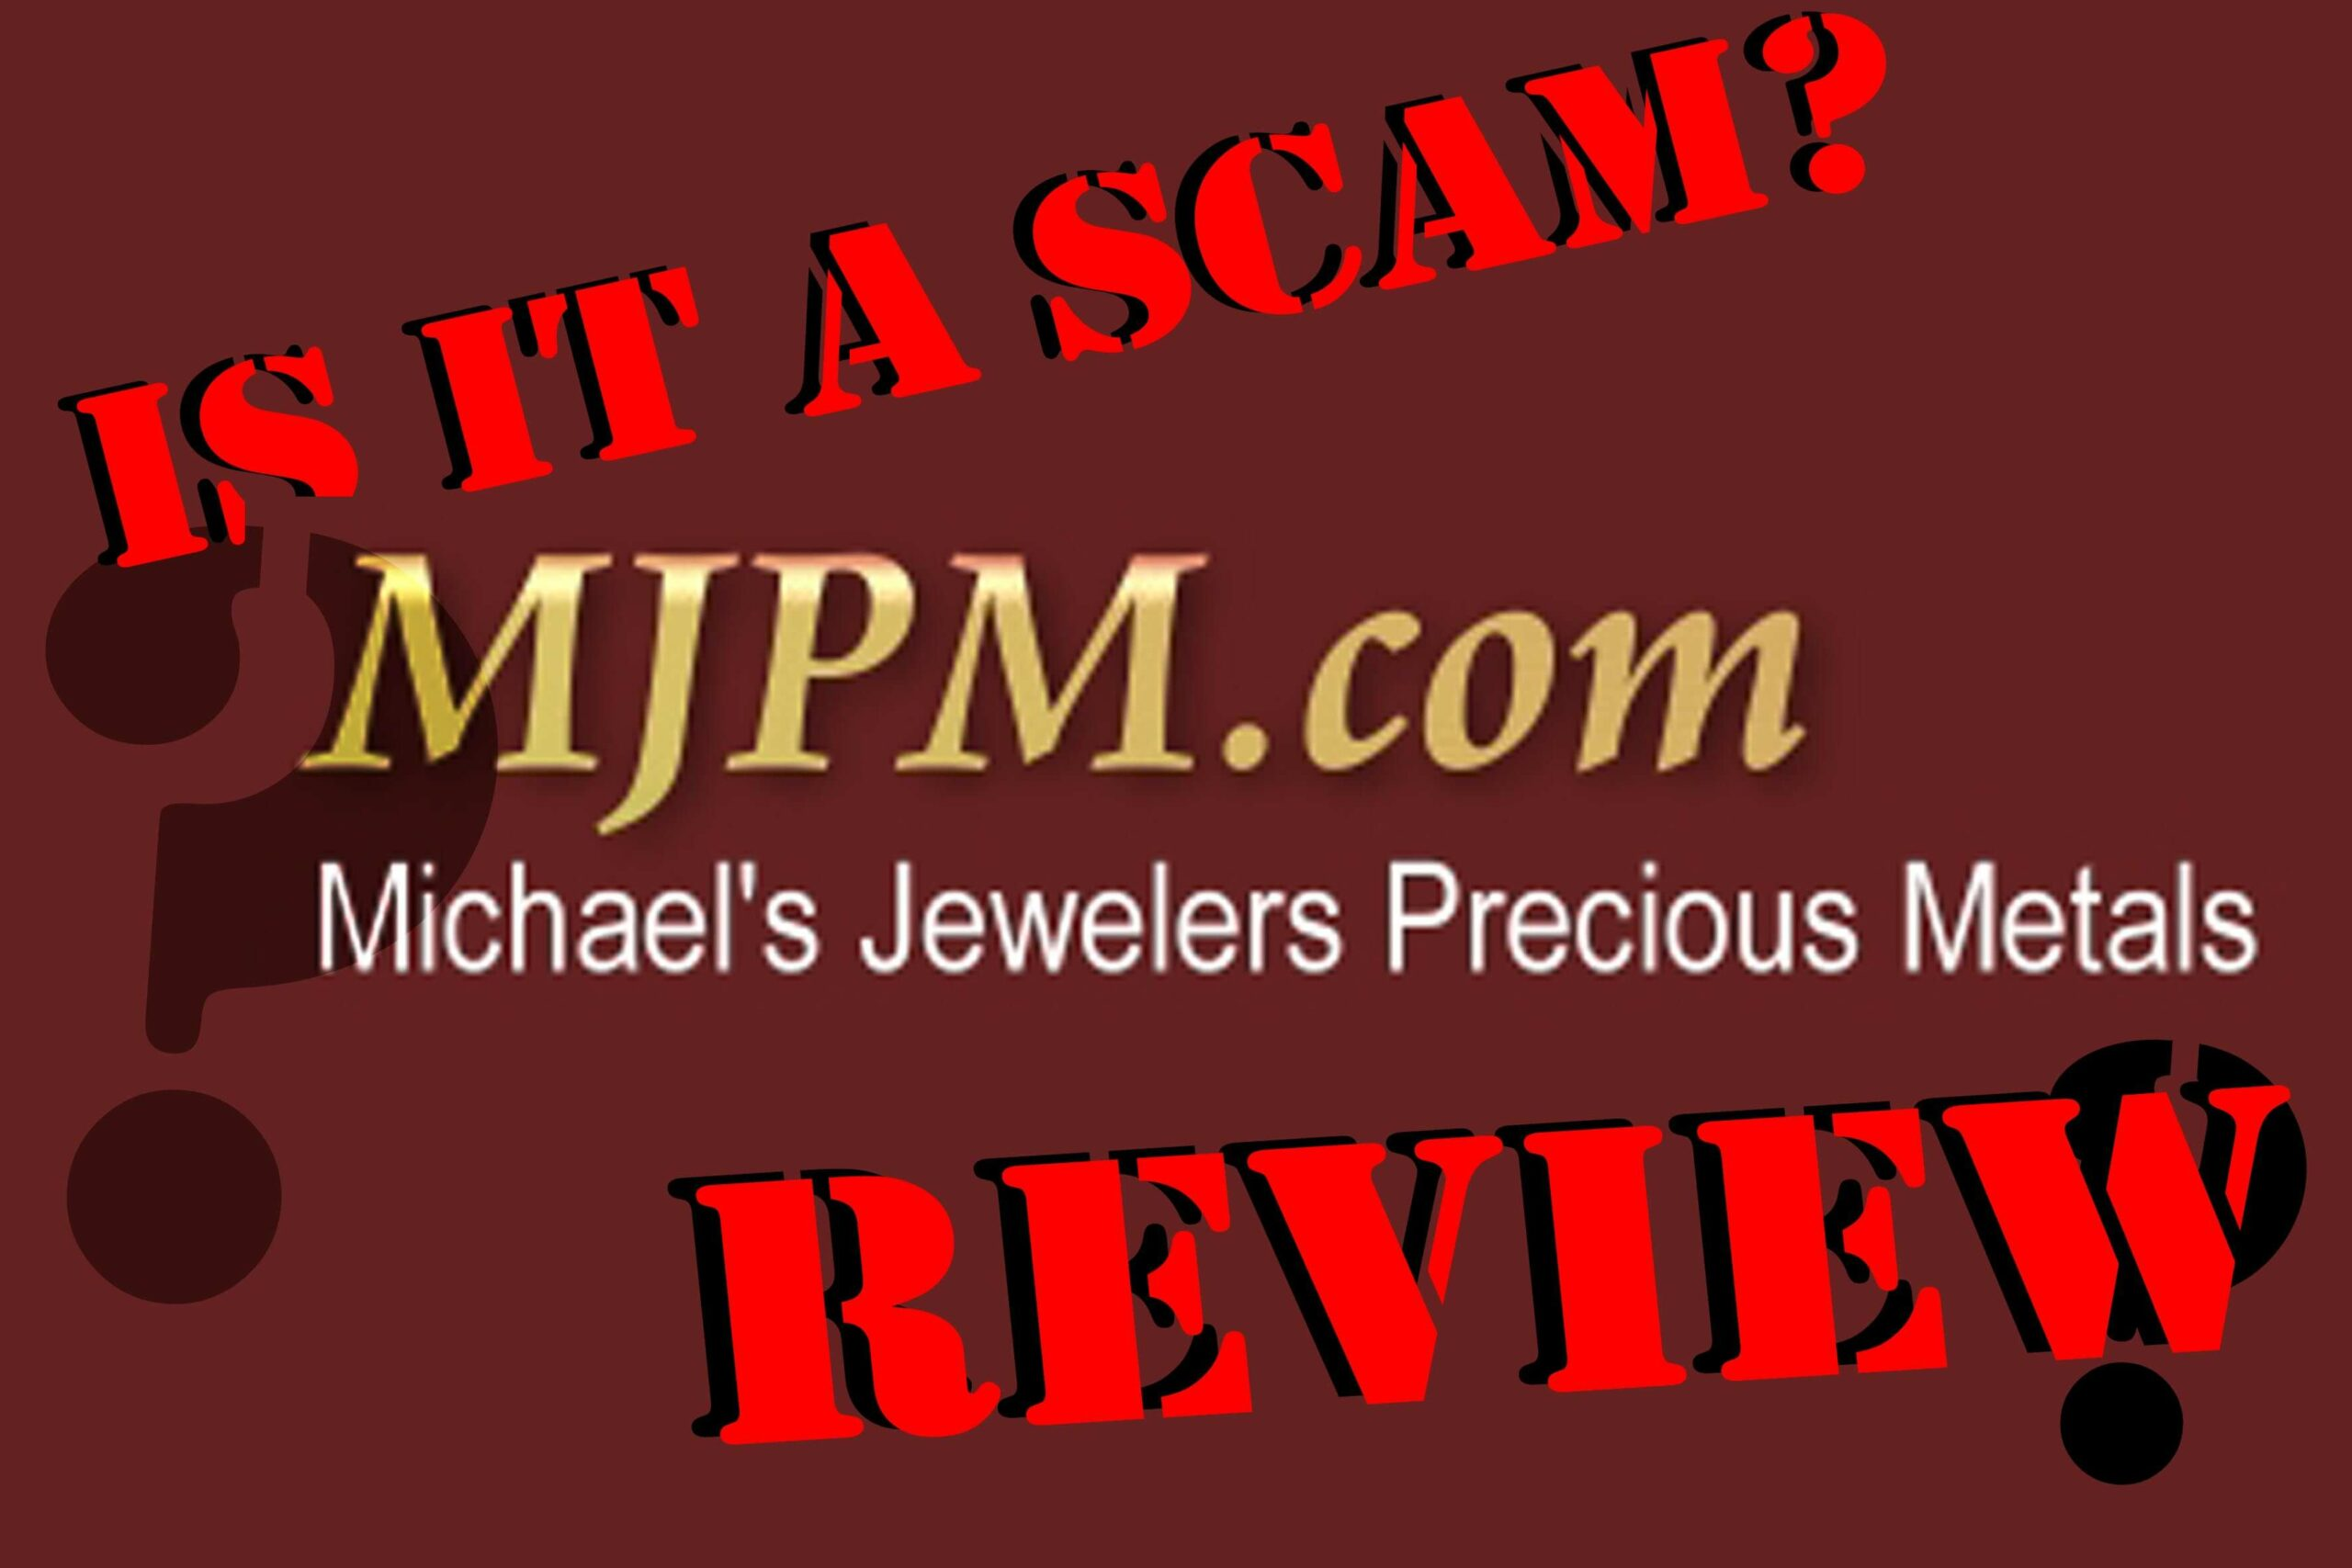 MJPM Review